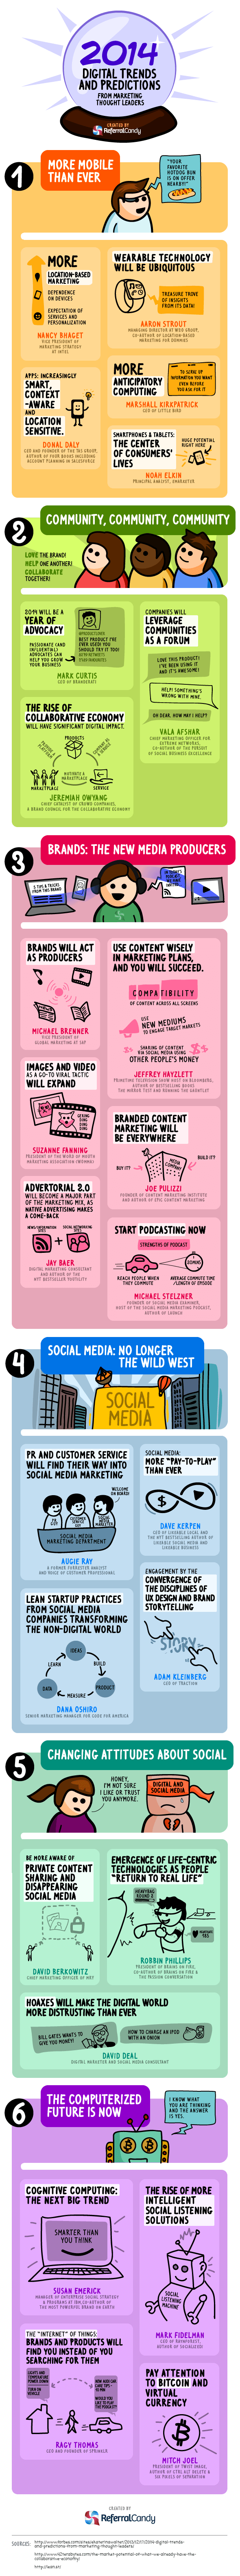 2014-digital-trends-predictions-marketing-infographic-590